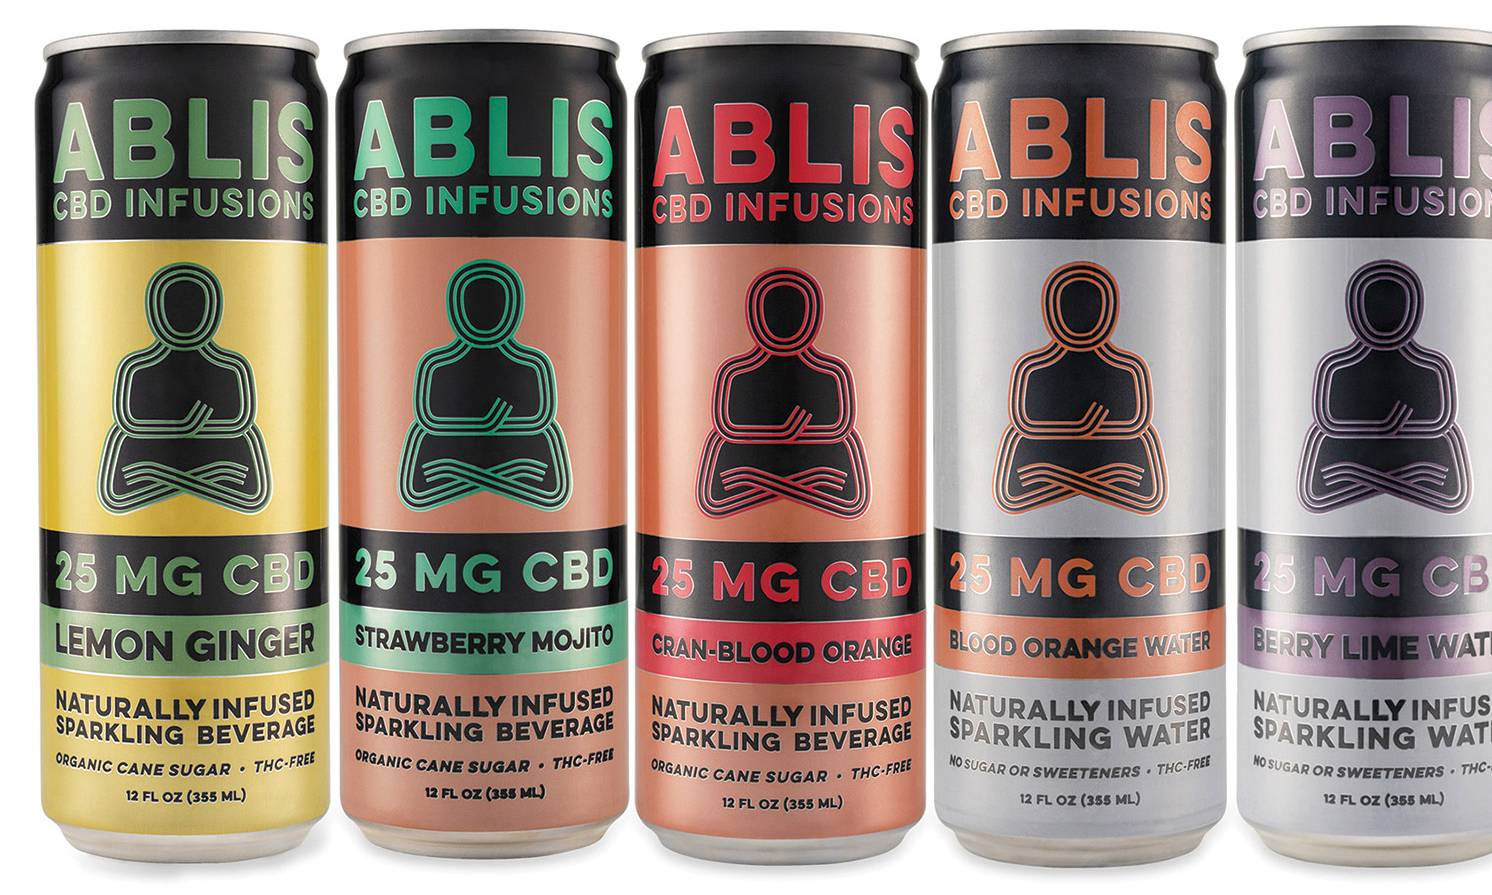 Ablis CBD Infusions, sparkling water